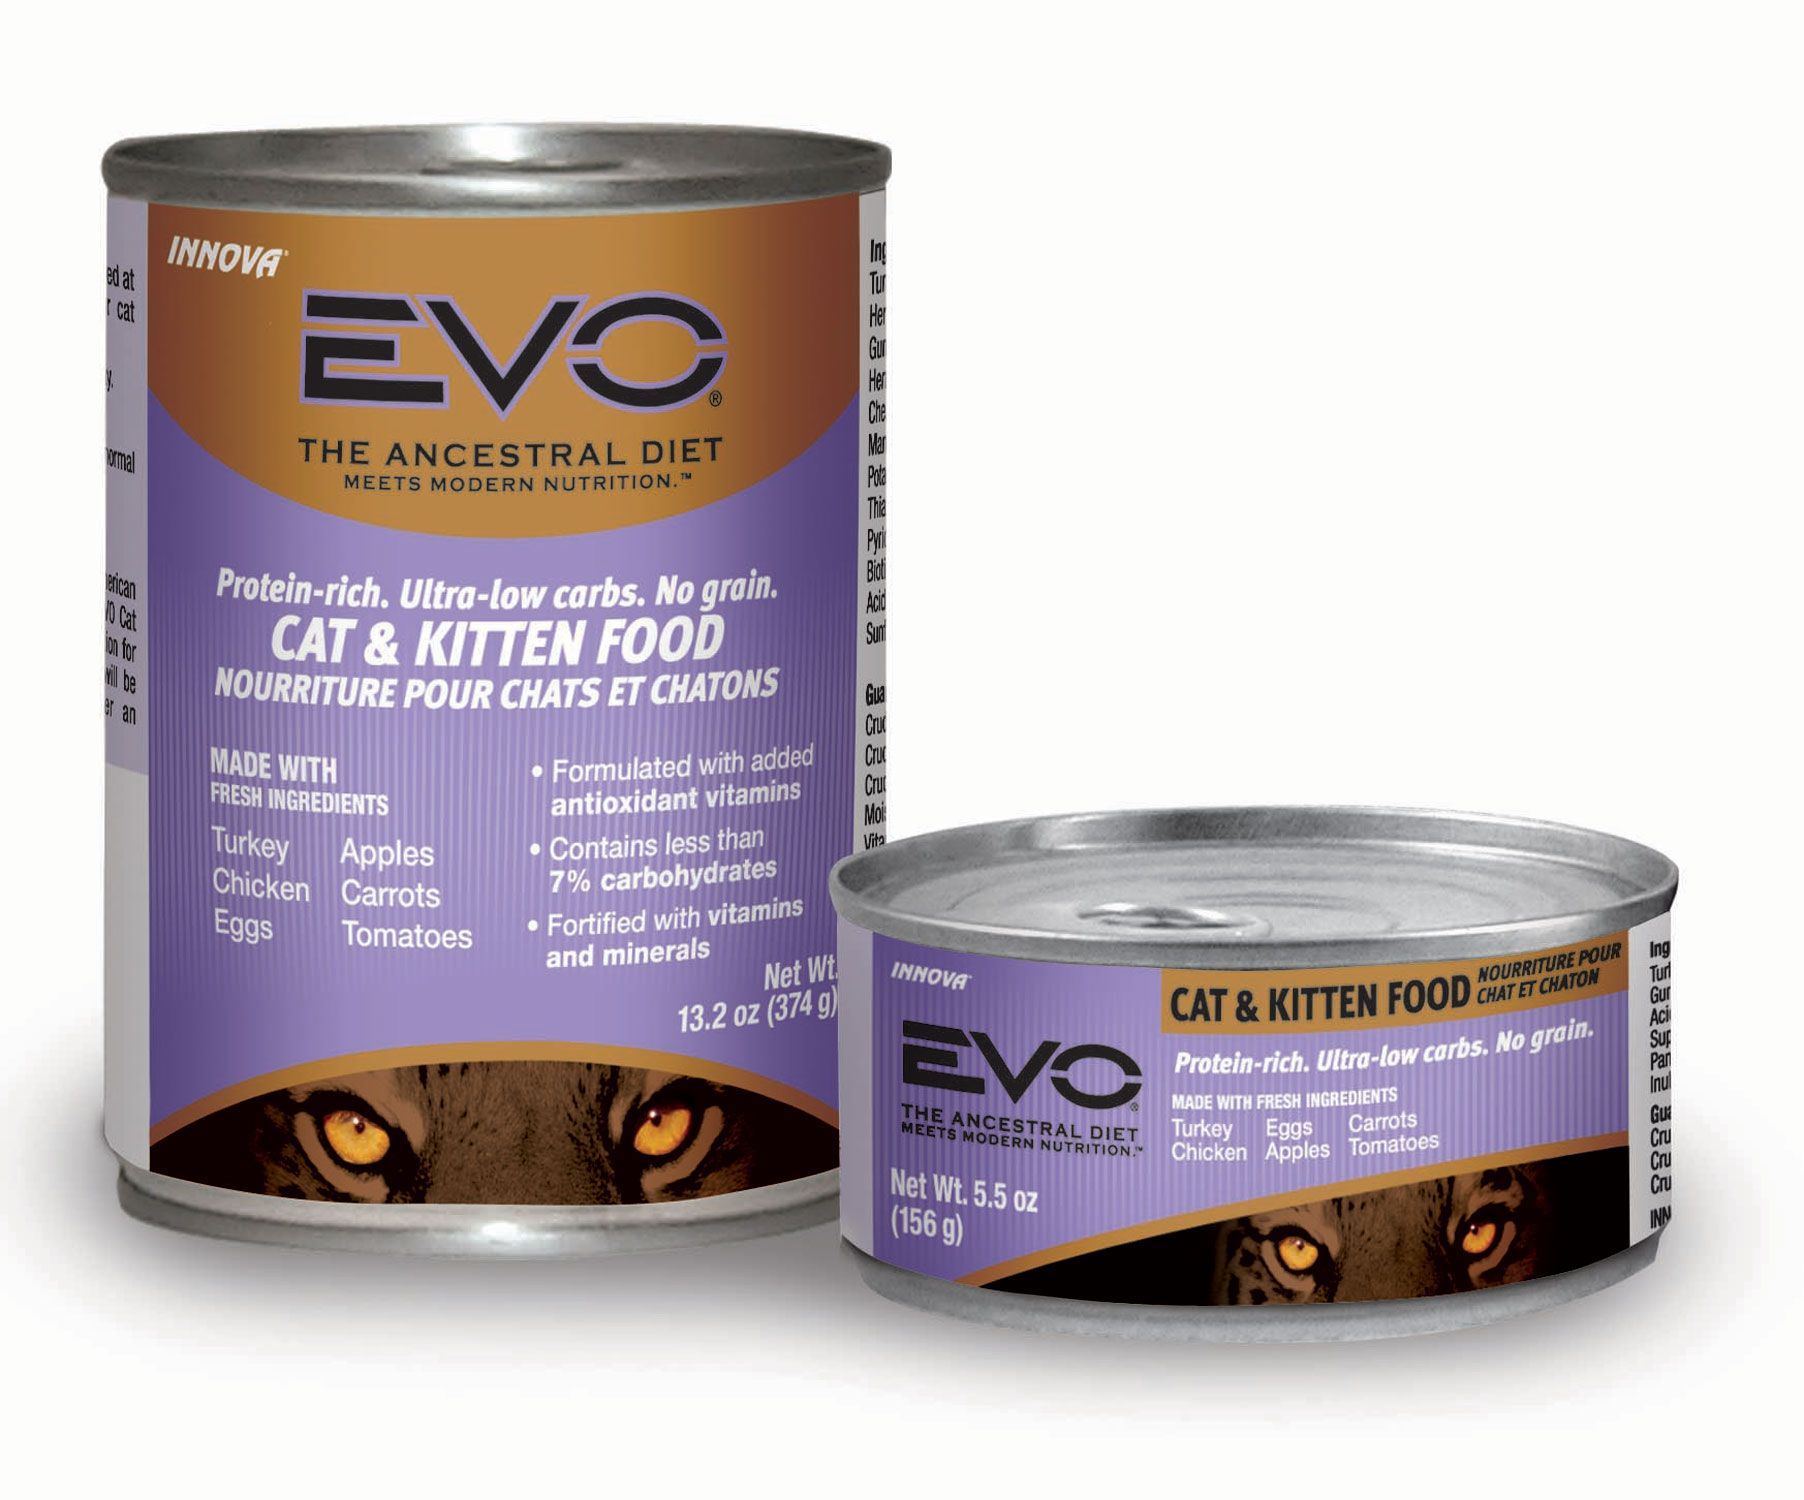 My Cats Love It Evo Turkey And Chicken Formula Canned Cat And Kitten Food Kitten Food Chicken Cat Cat Food